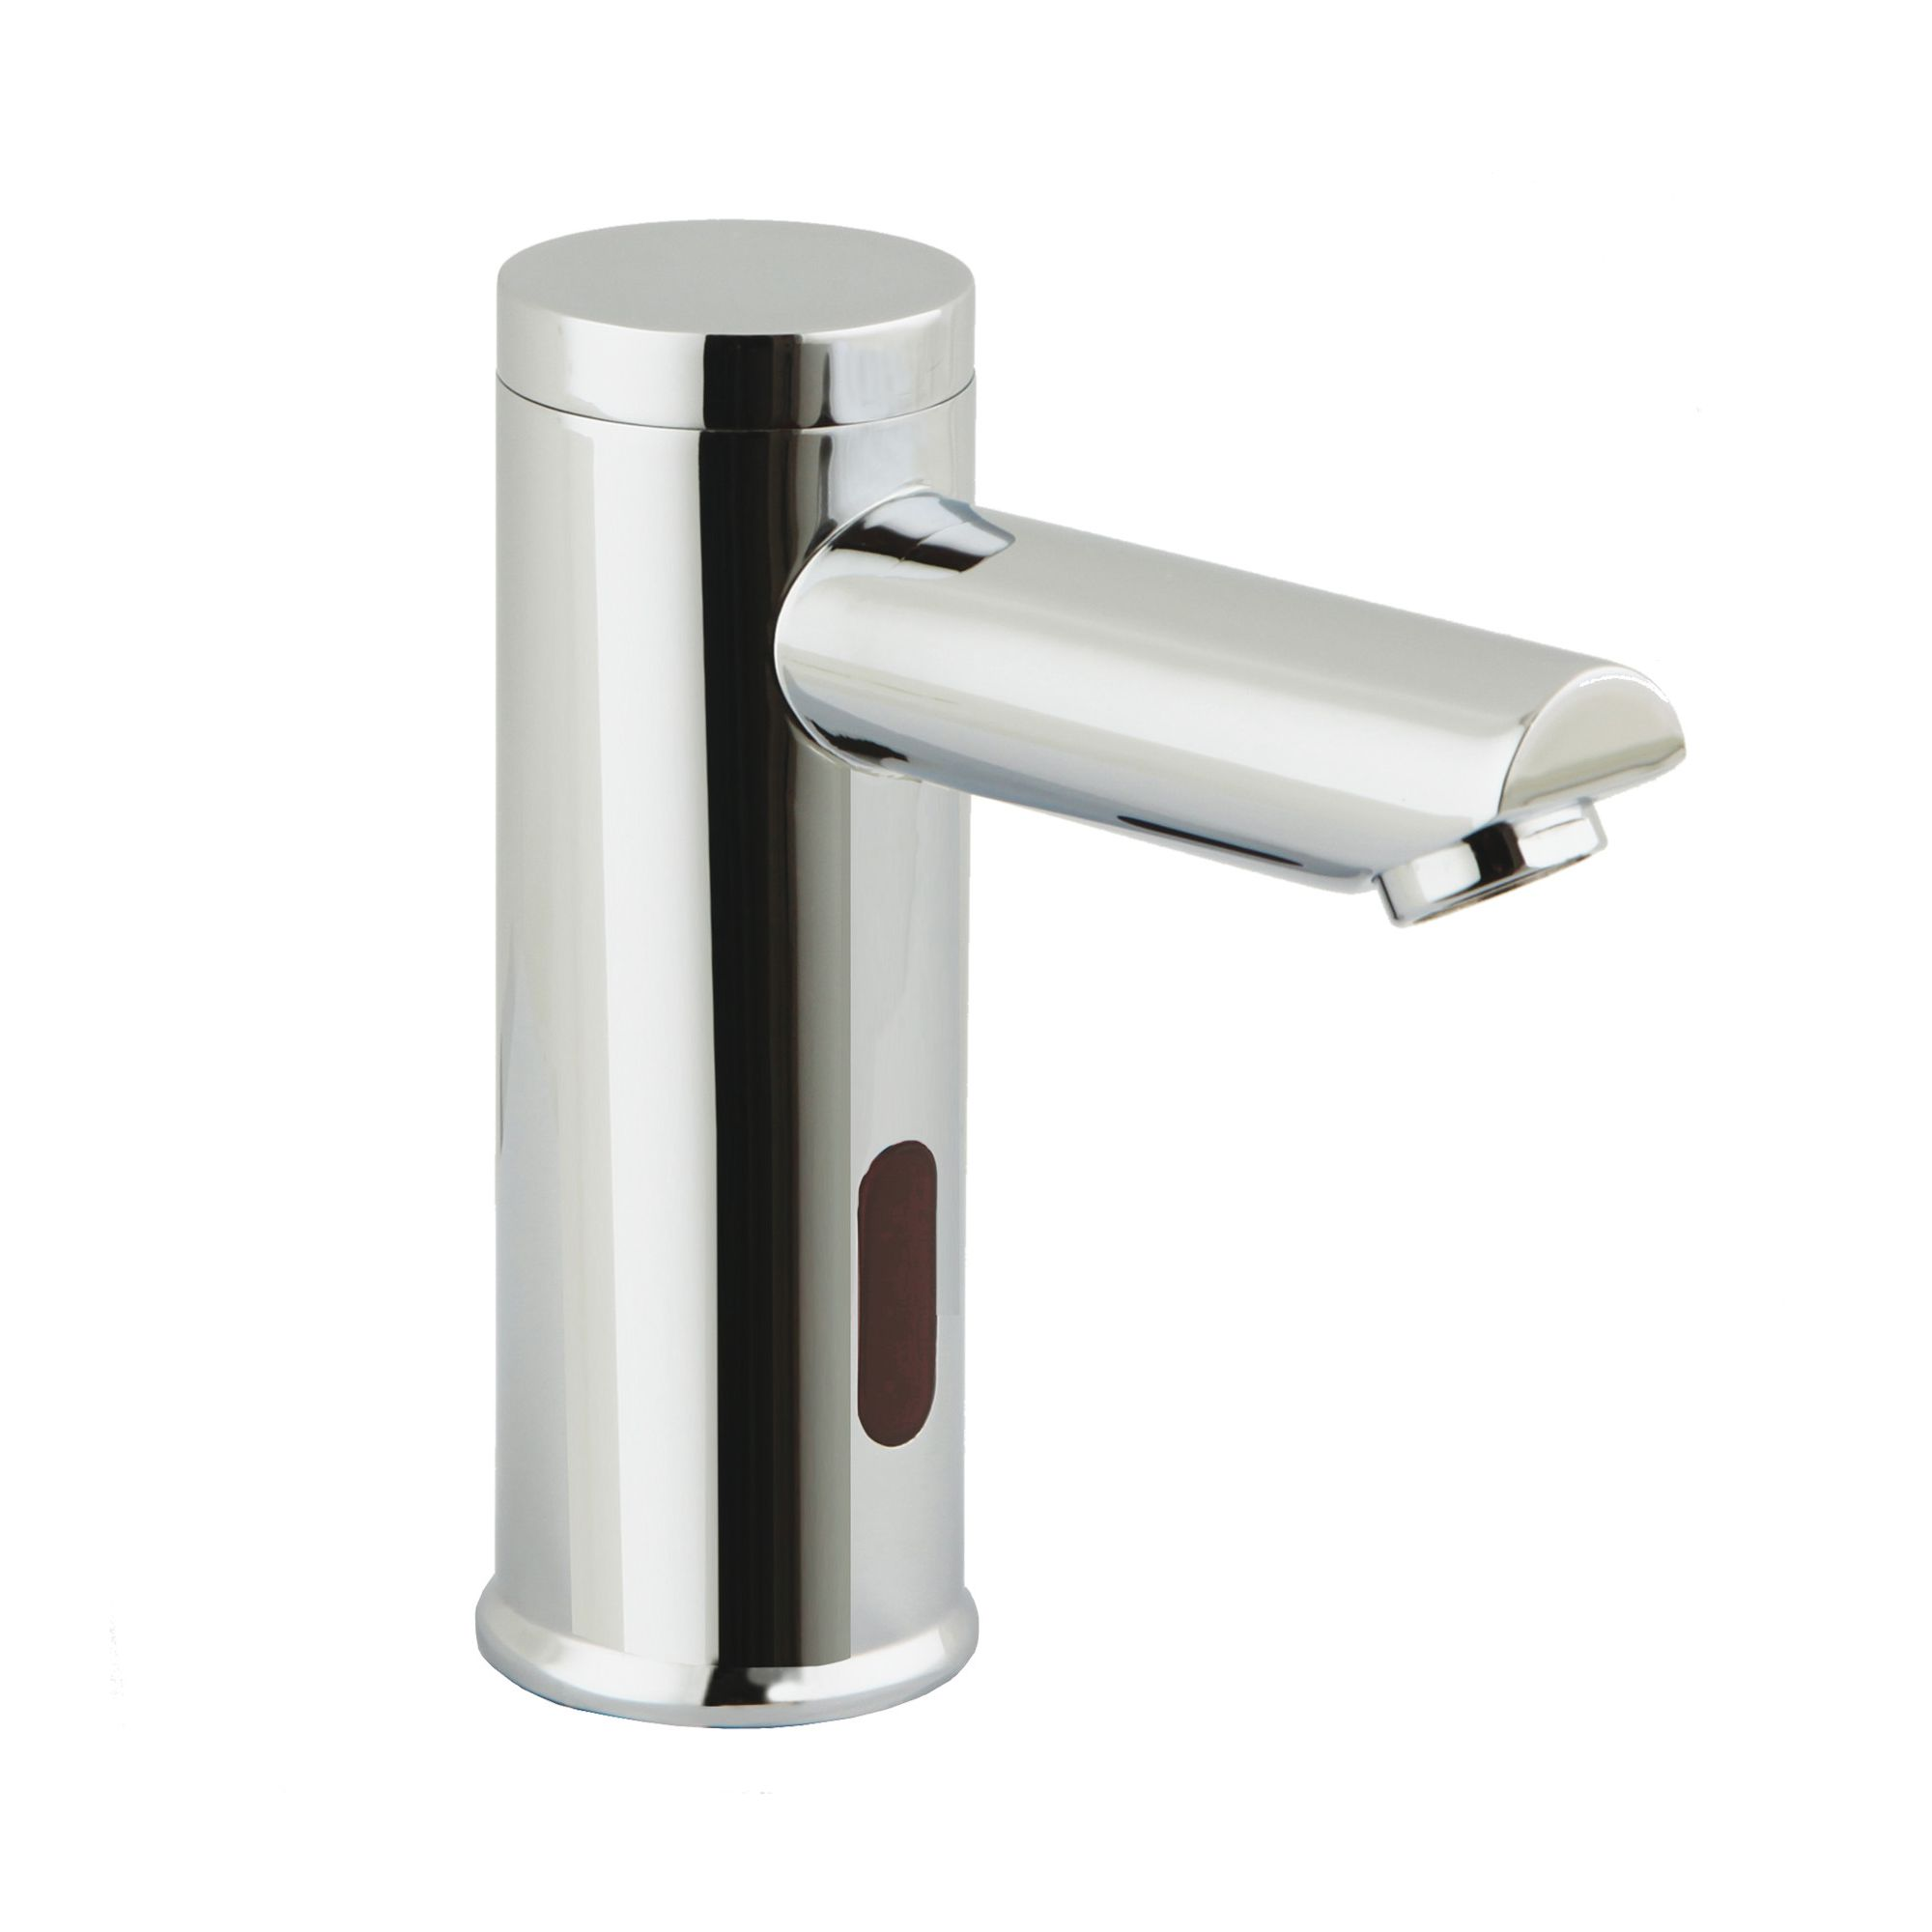 Ramon Soler Soltronic 8102 Electronic Pre-mixed Basin Mixer at Tesco Direct